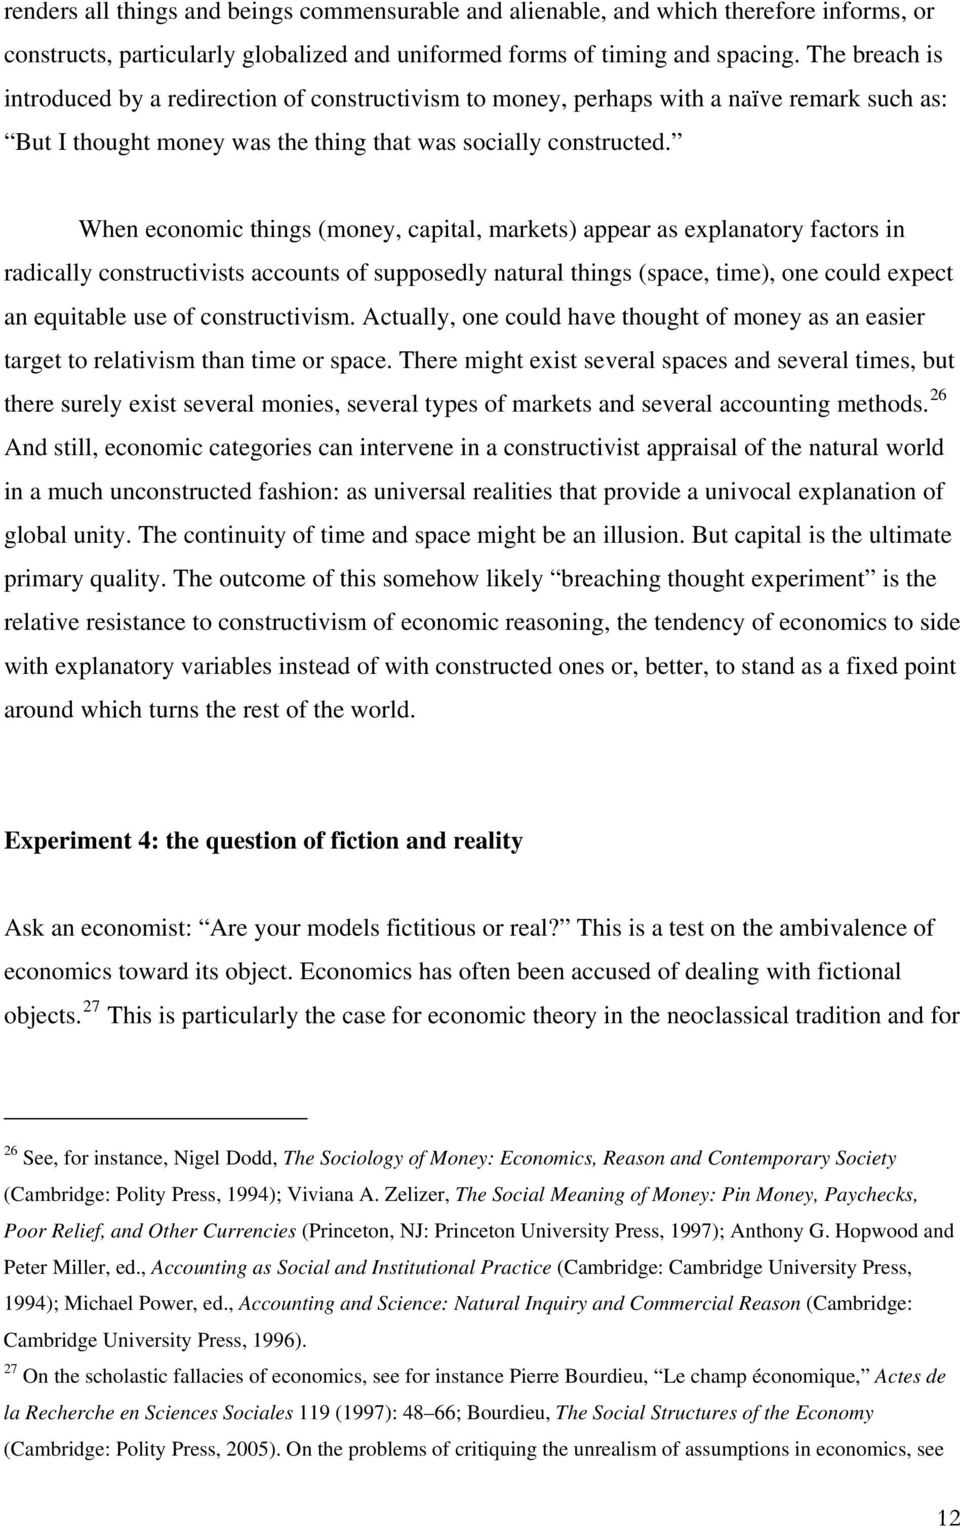 When economic things (money, capital, markets) appear as explanatory factors in radically constructivists accounts of supposedly natural things (space, time), one could expect an equitable use of